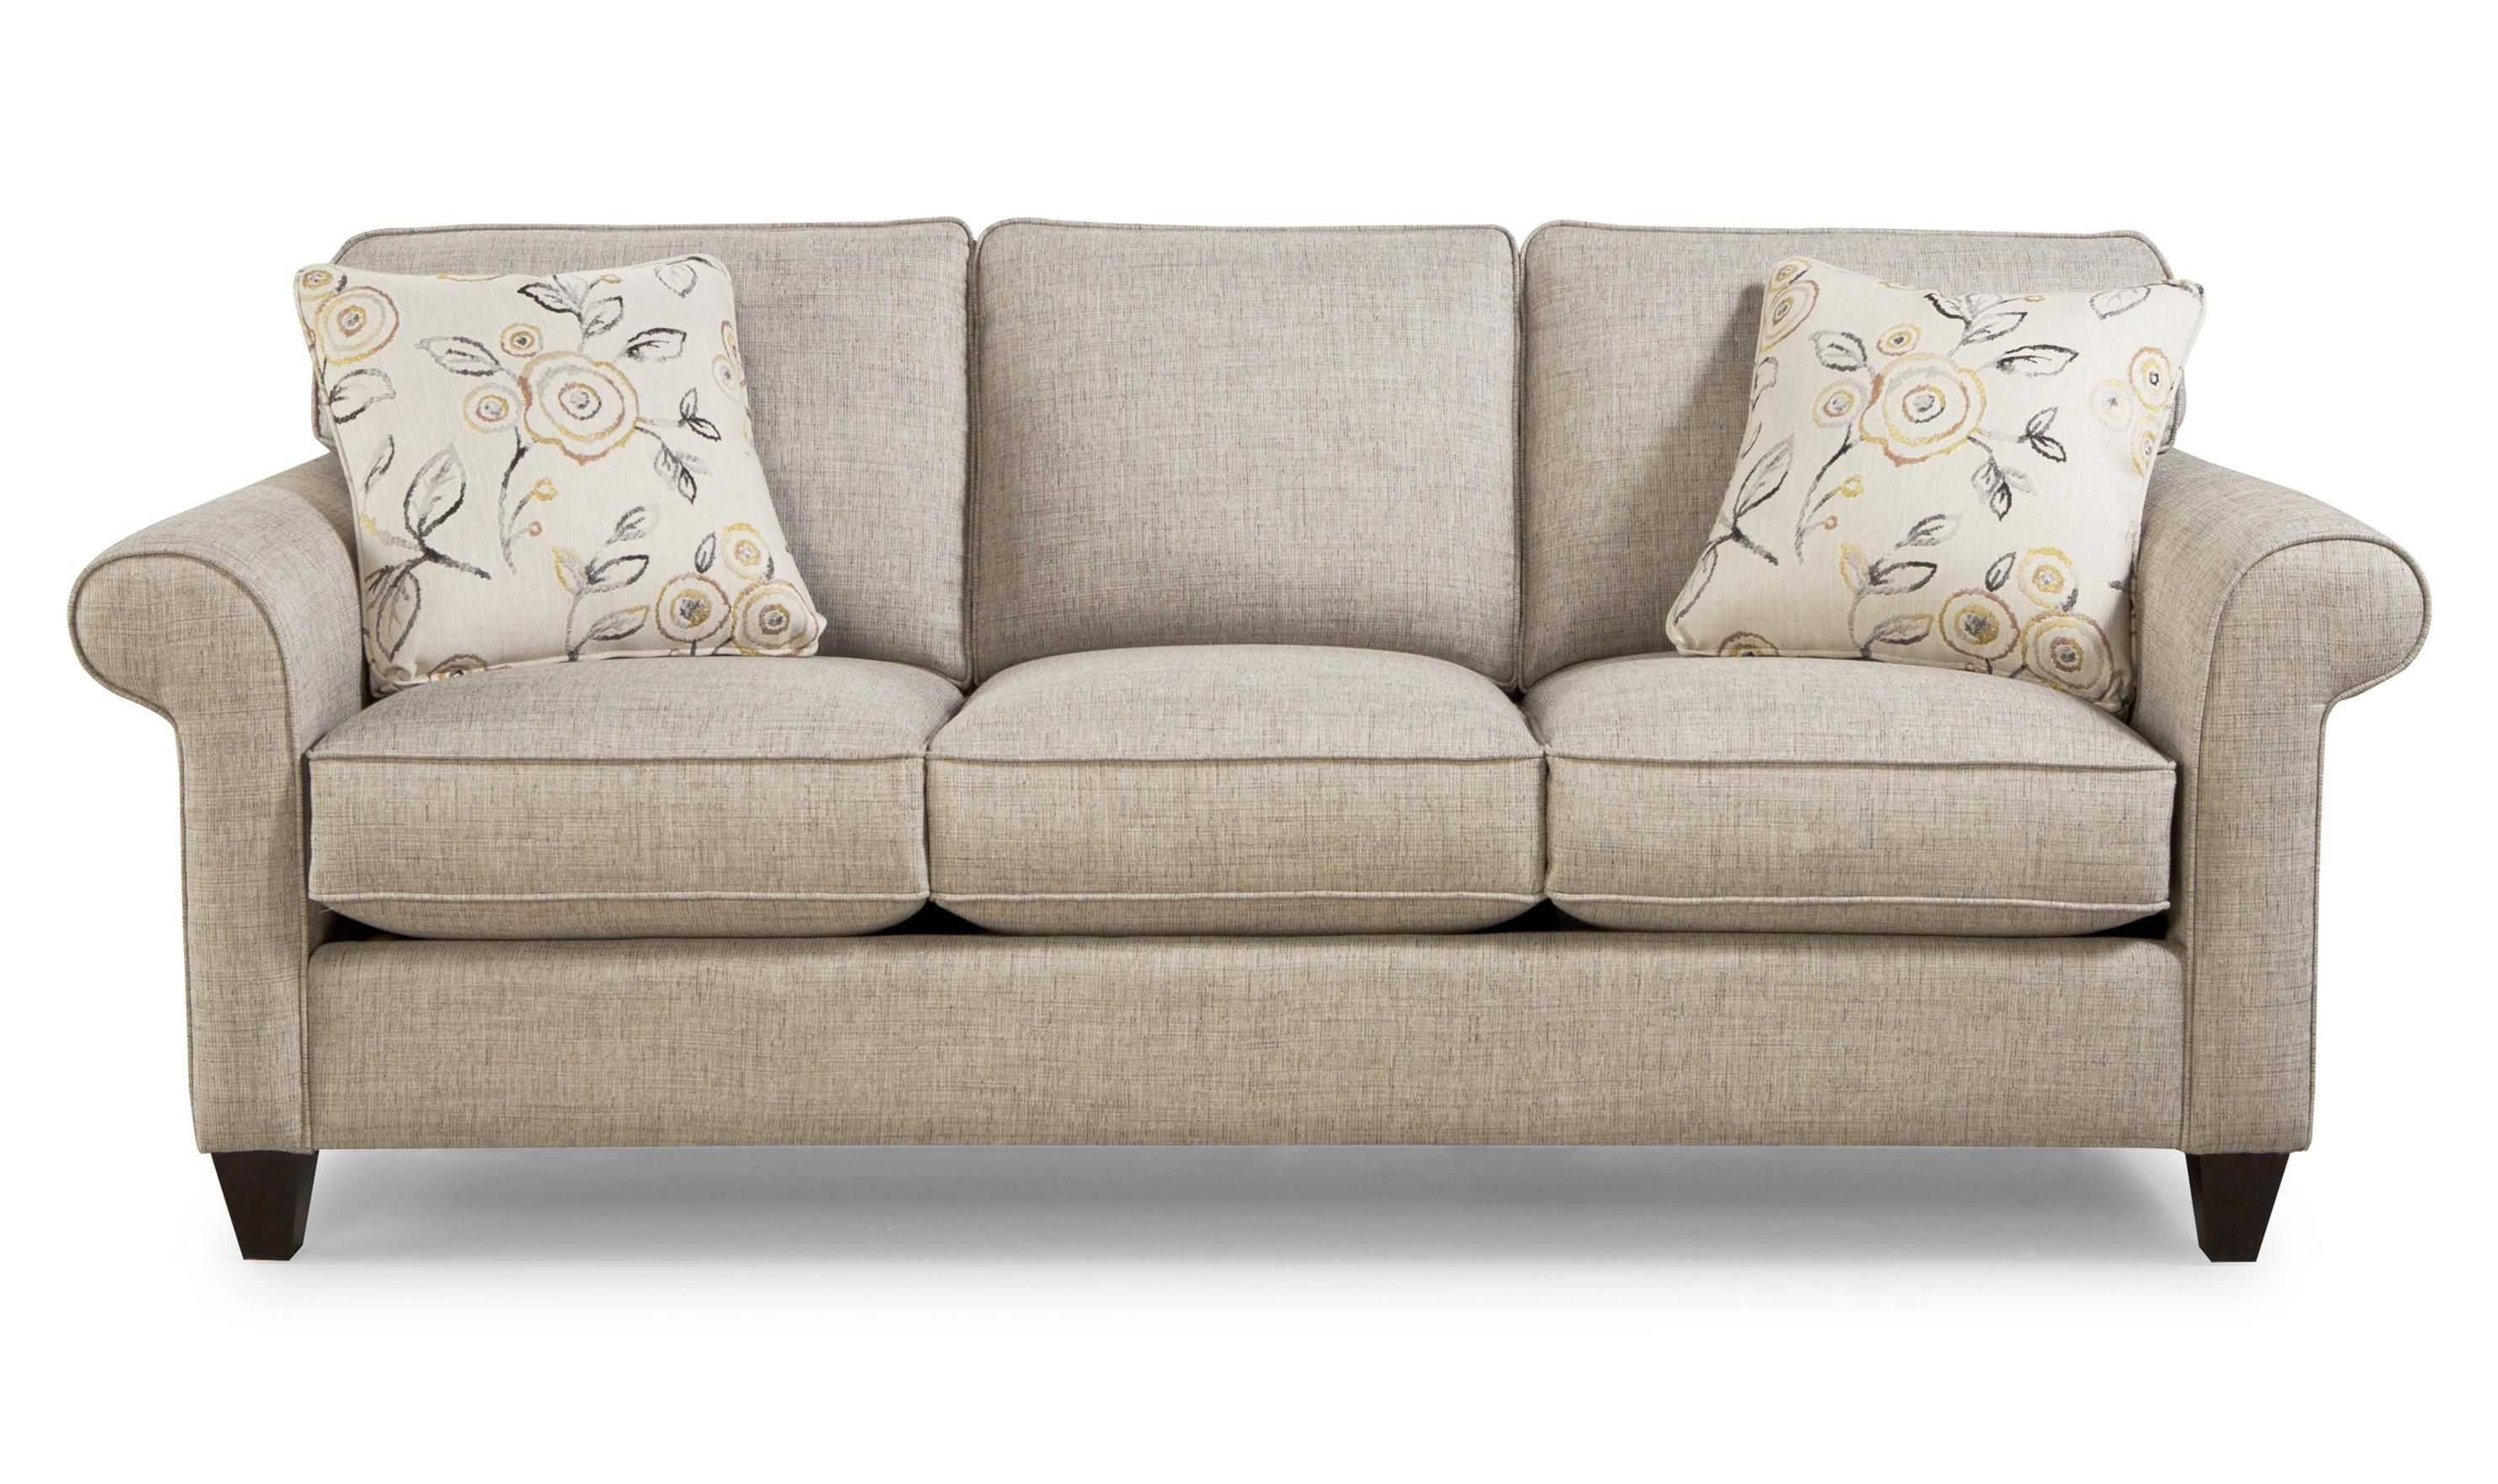 742100 Sofa By Craftmaster